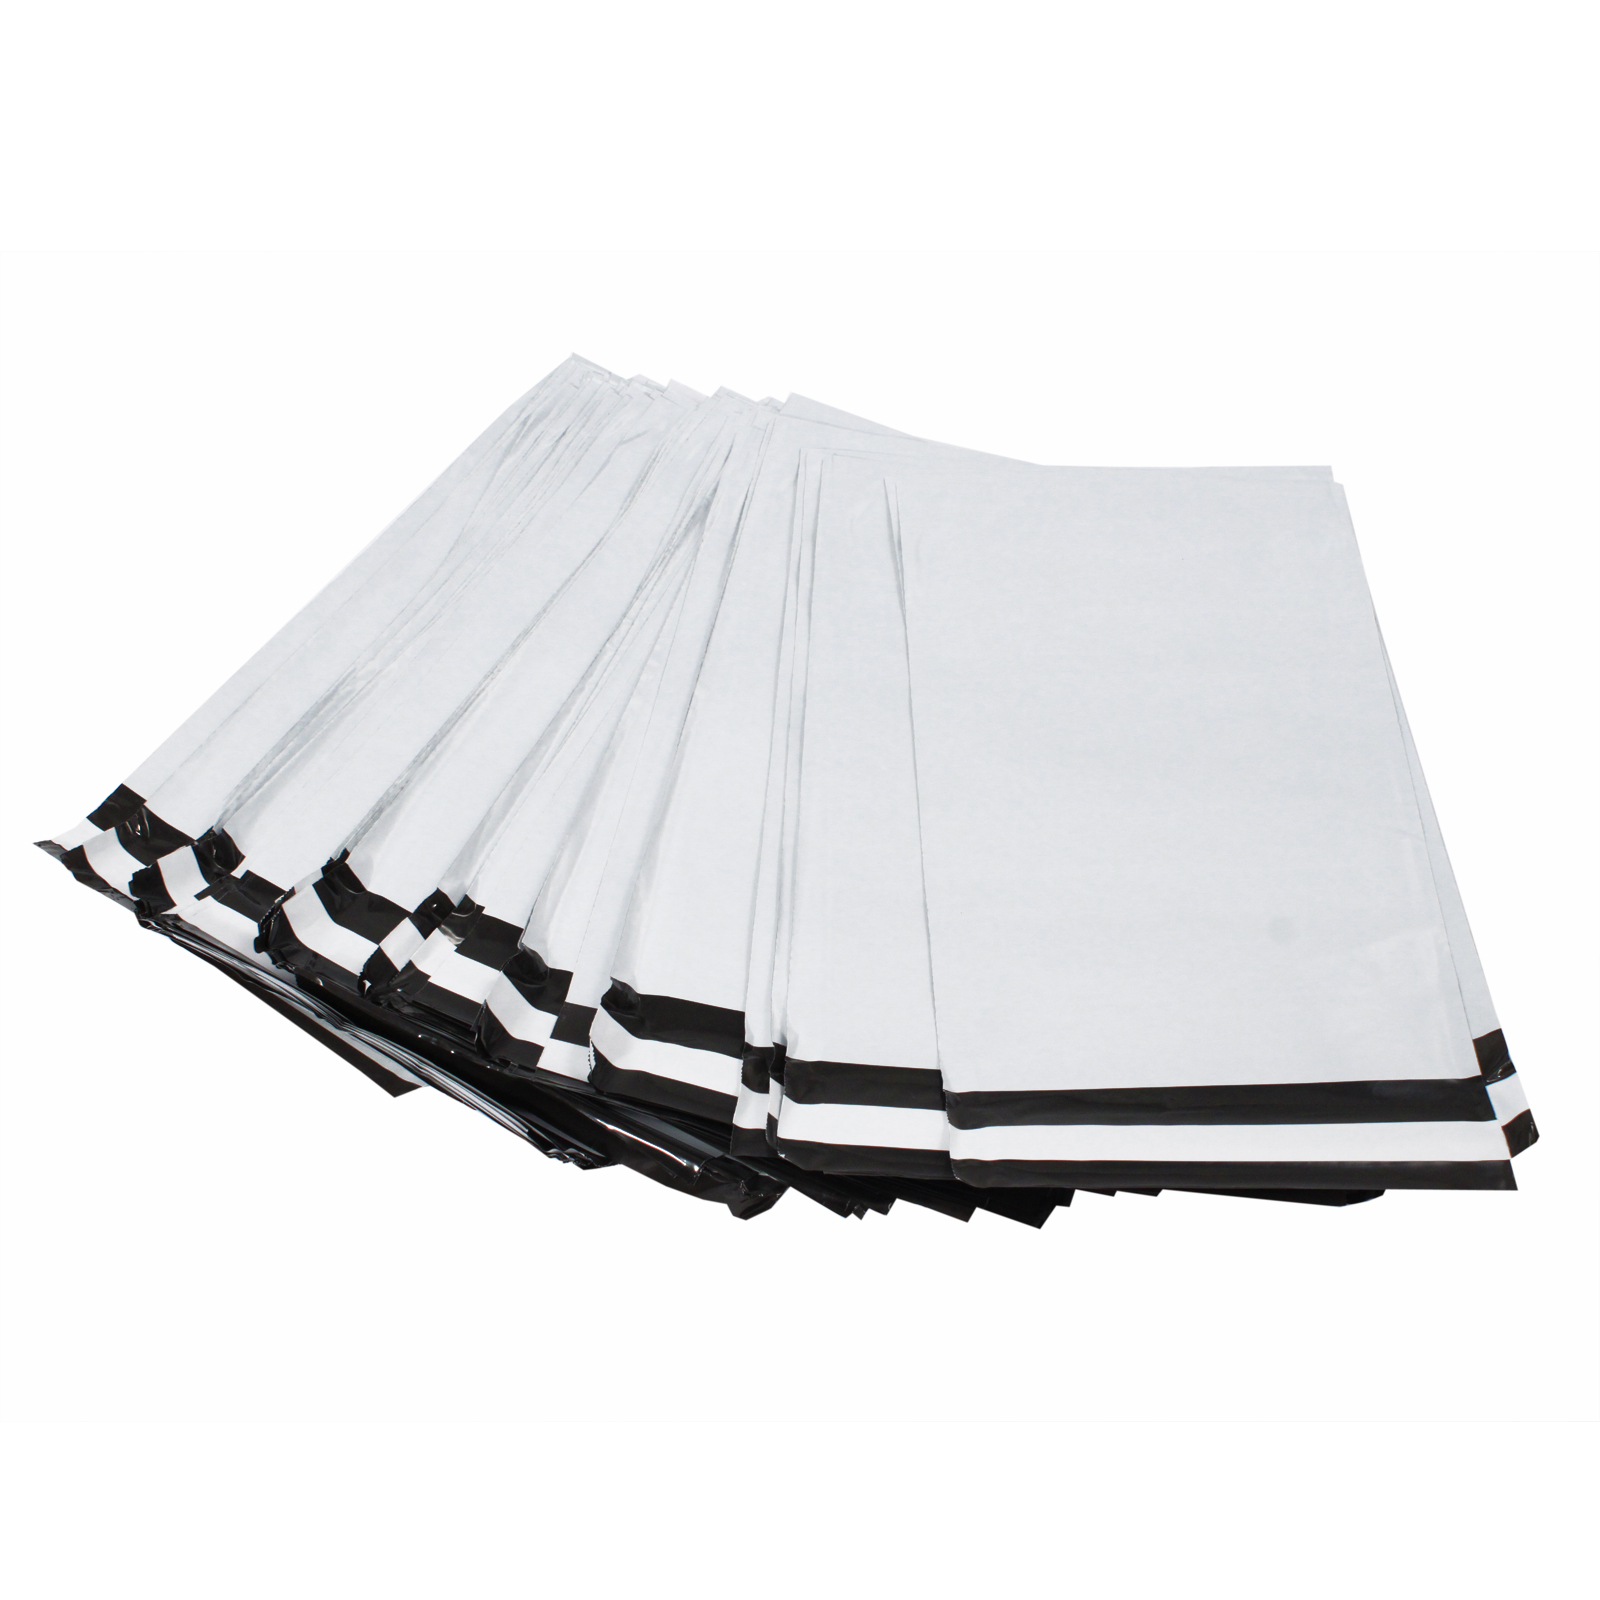 100pc Wholesale Polymailer Envelope Shipping Mailers USPS Postal Bags - 19 x 24